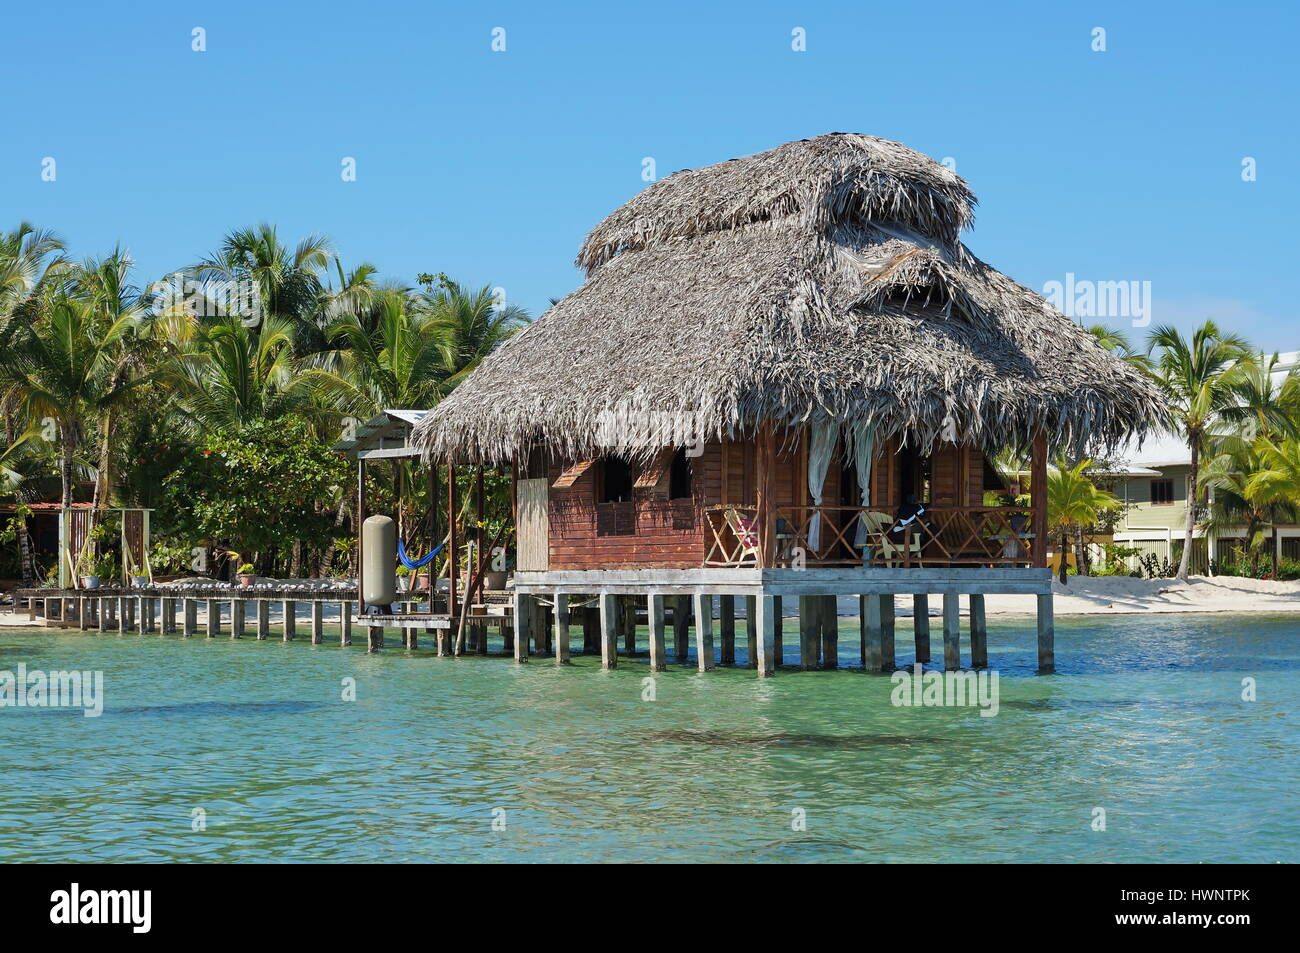 Overwater bungalow with thatch roof, Bastimentos island, Bocas del Toro, Caribbean, Panama - Stock Image